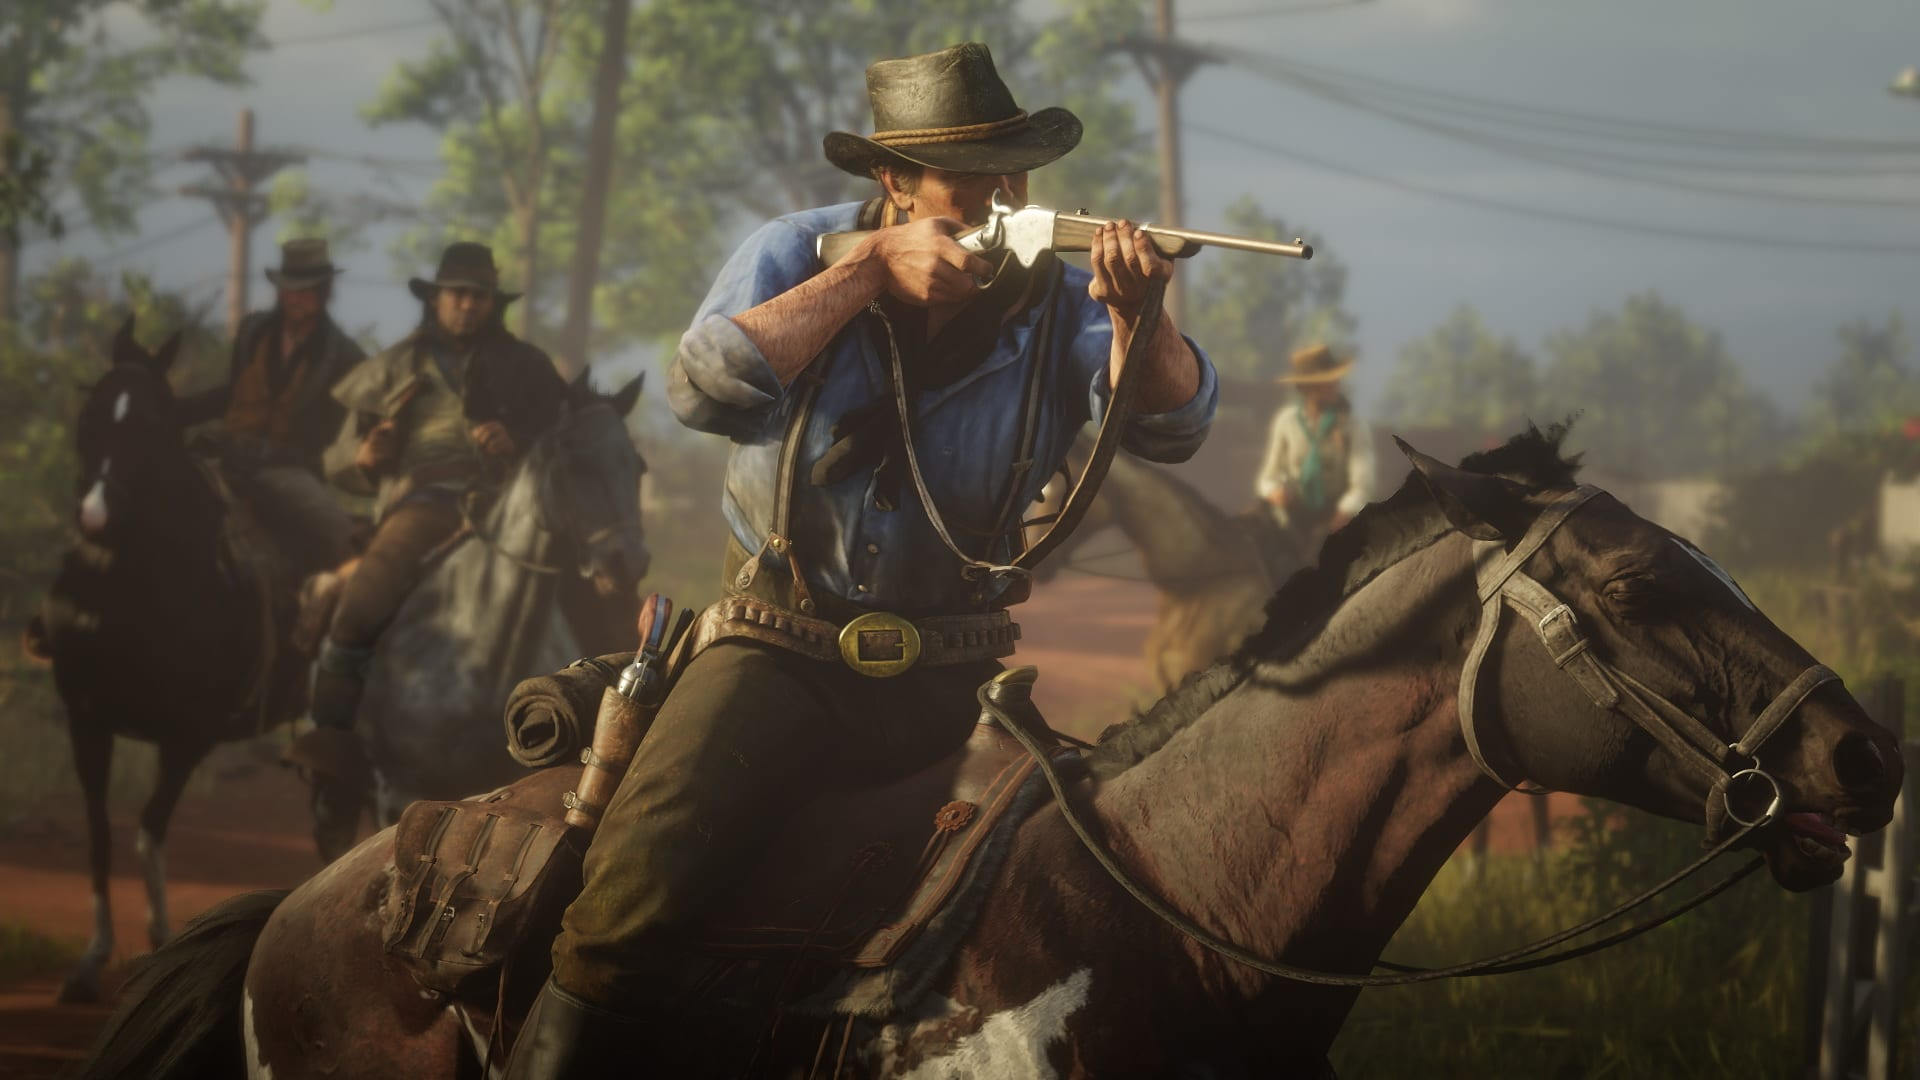 10 Red Dead Redemption 2 Pc Mods That Need To Get Made Asap